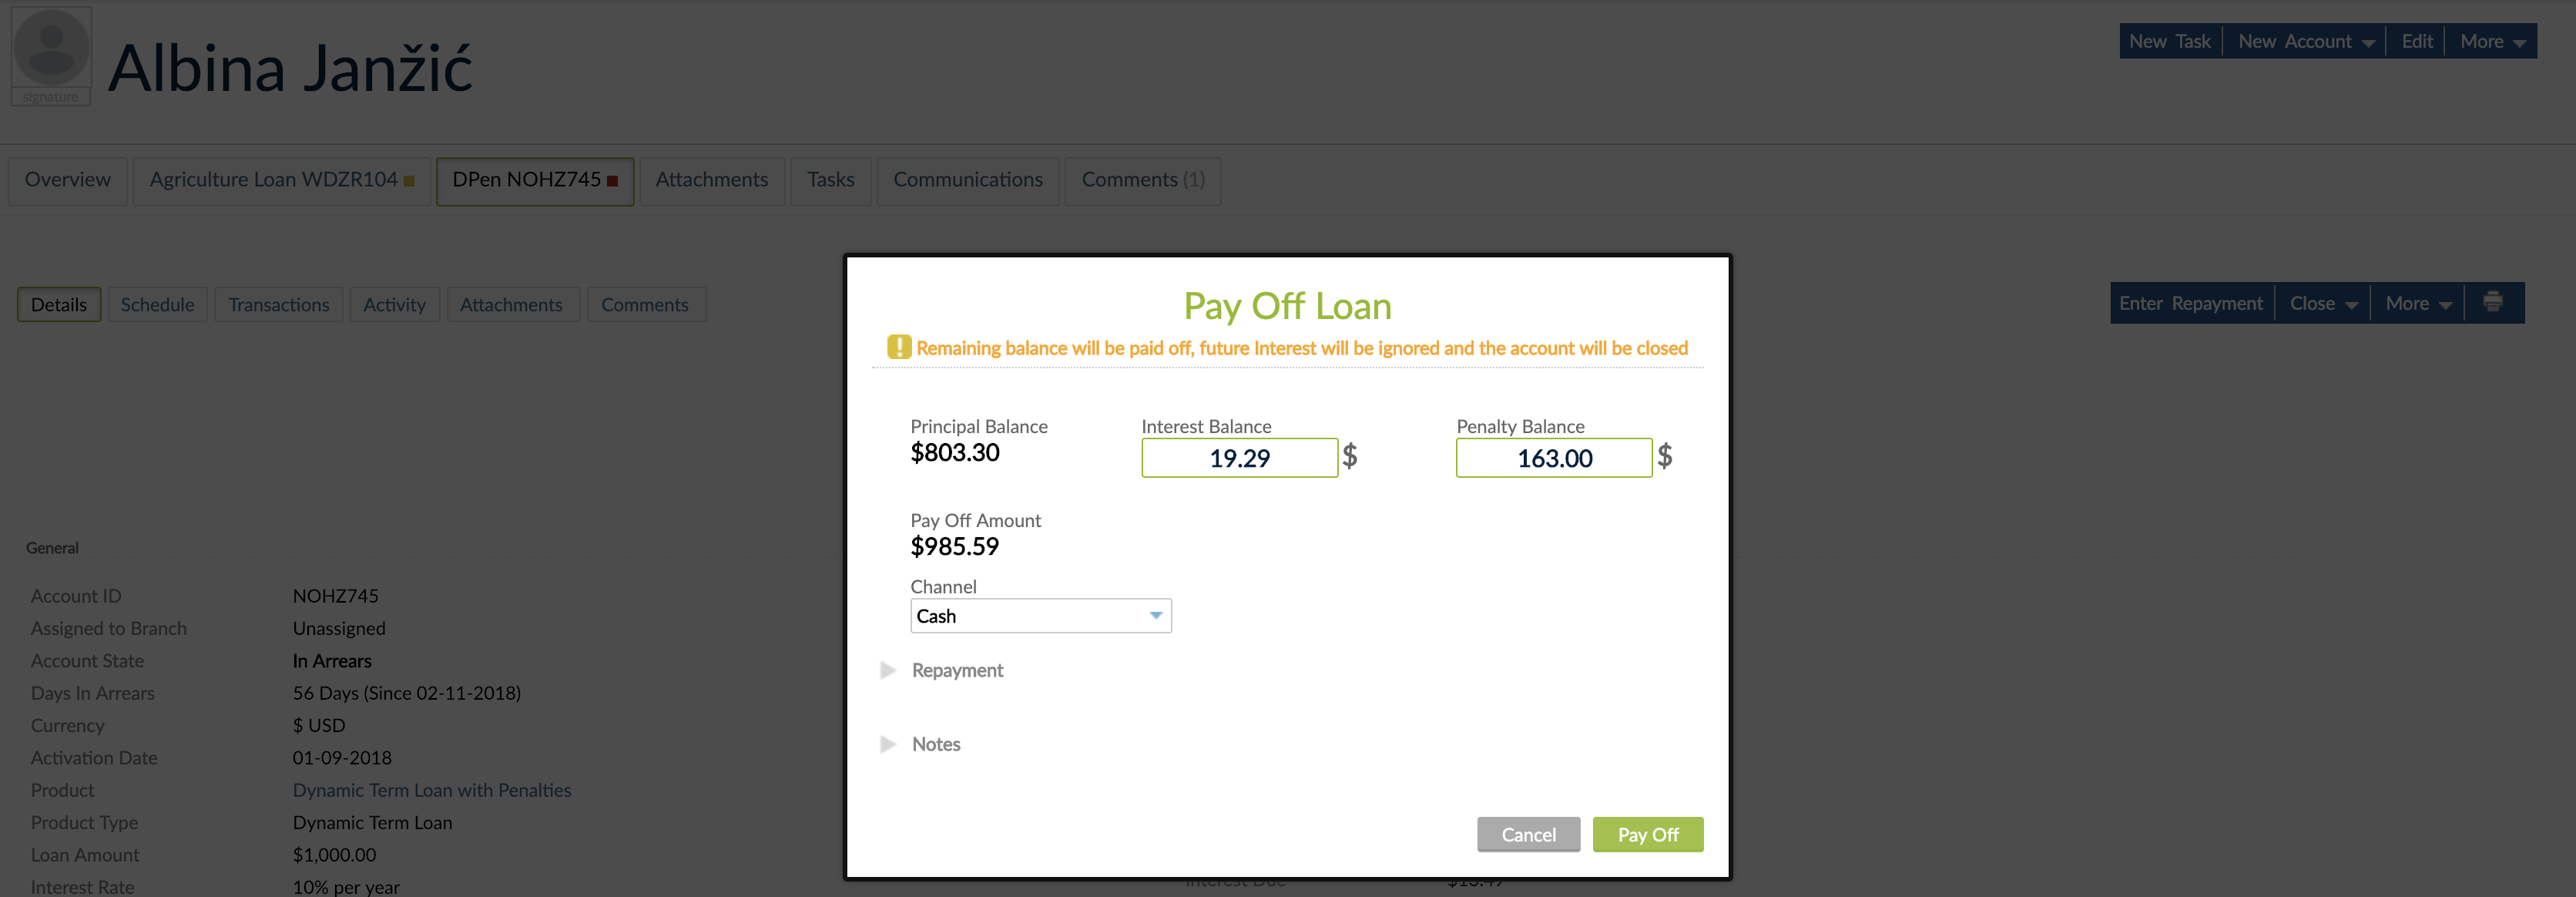 Pay Off Loan pop-up with Principal Balance, Interest Balance, Penalty Balance, Pay Off Account, Channel, Repayment and Notes fields. Available buttons are Cancel and Pay Off